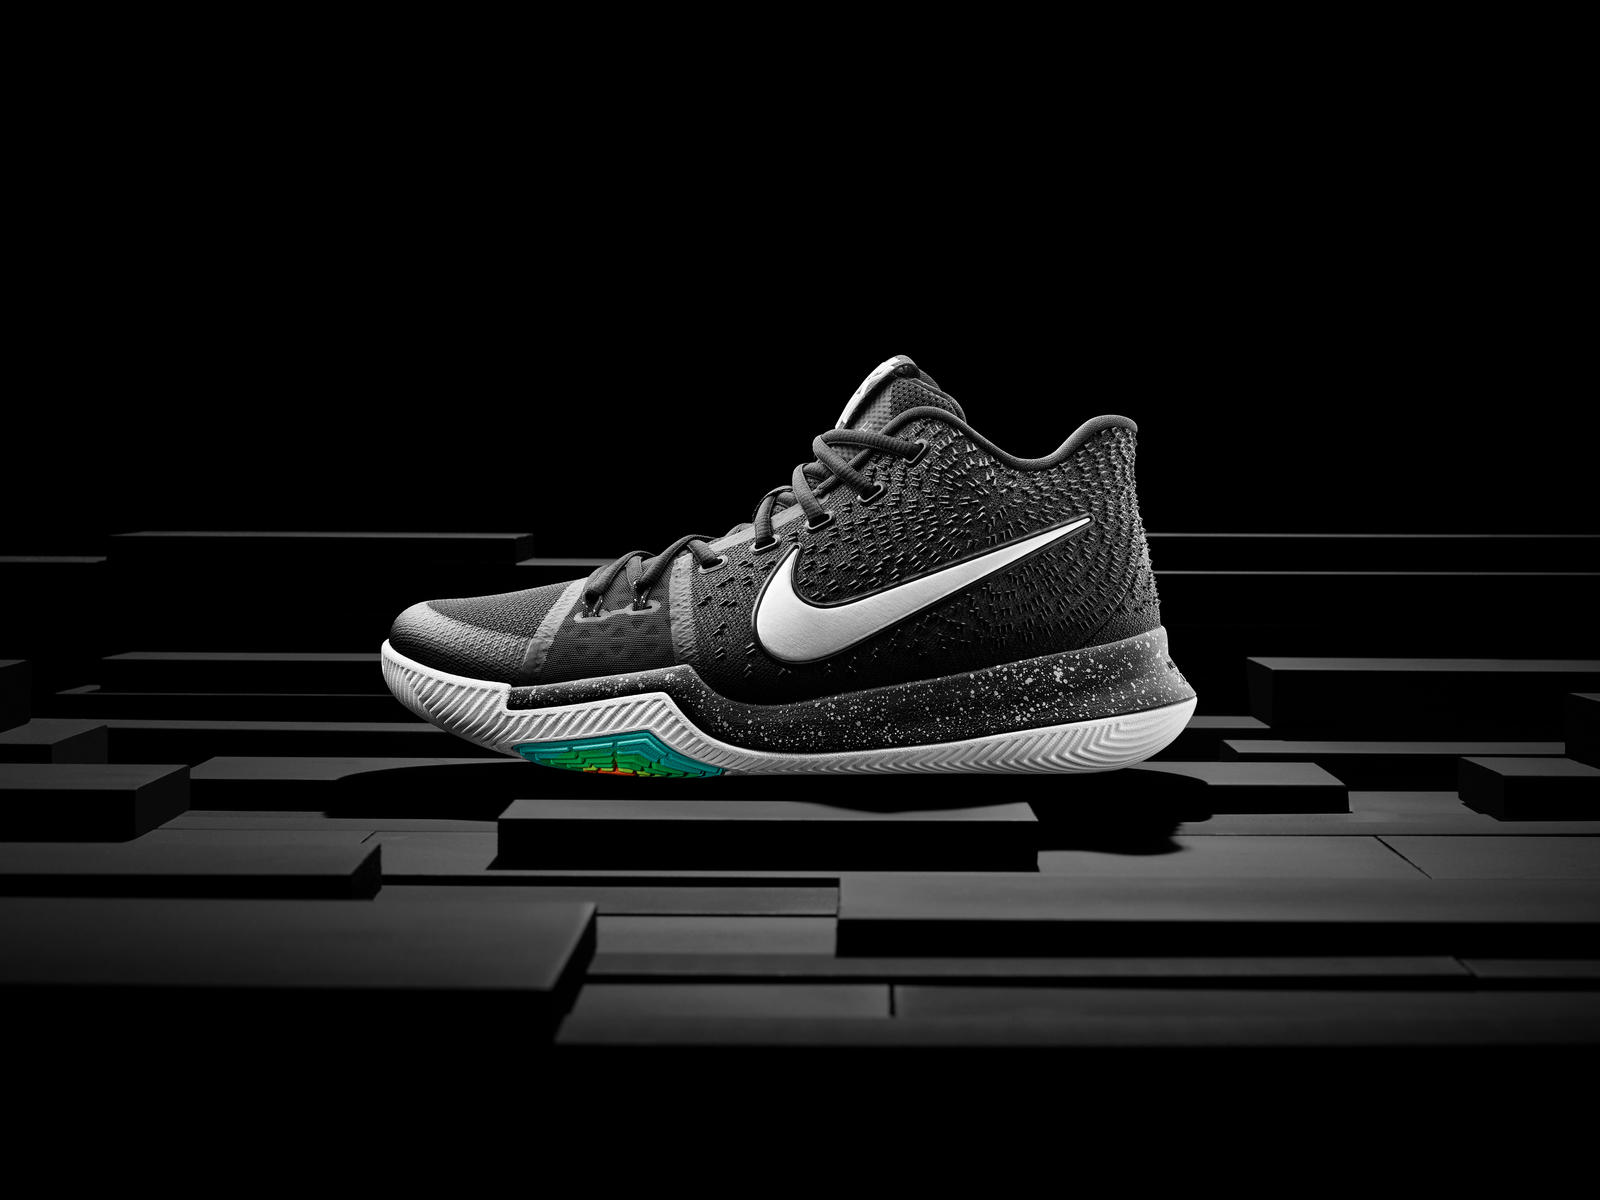 Nike Kyrie 3 PERFORMANCE REVIEW – The Ultimate Guard Shoe?